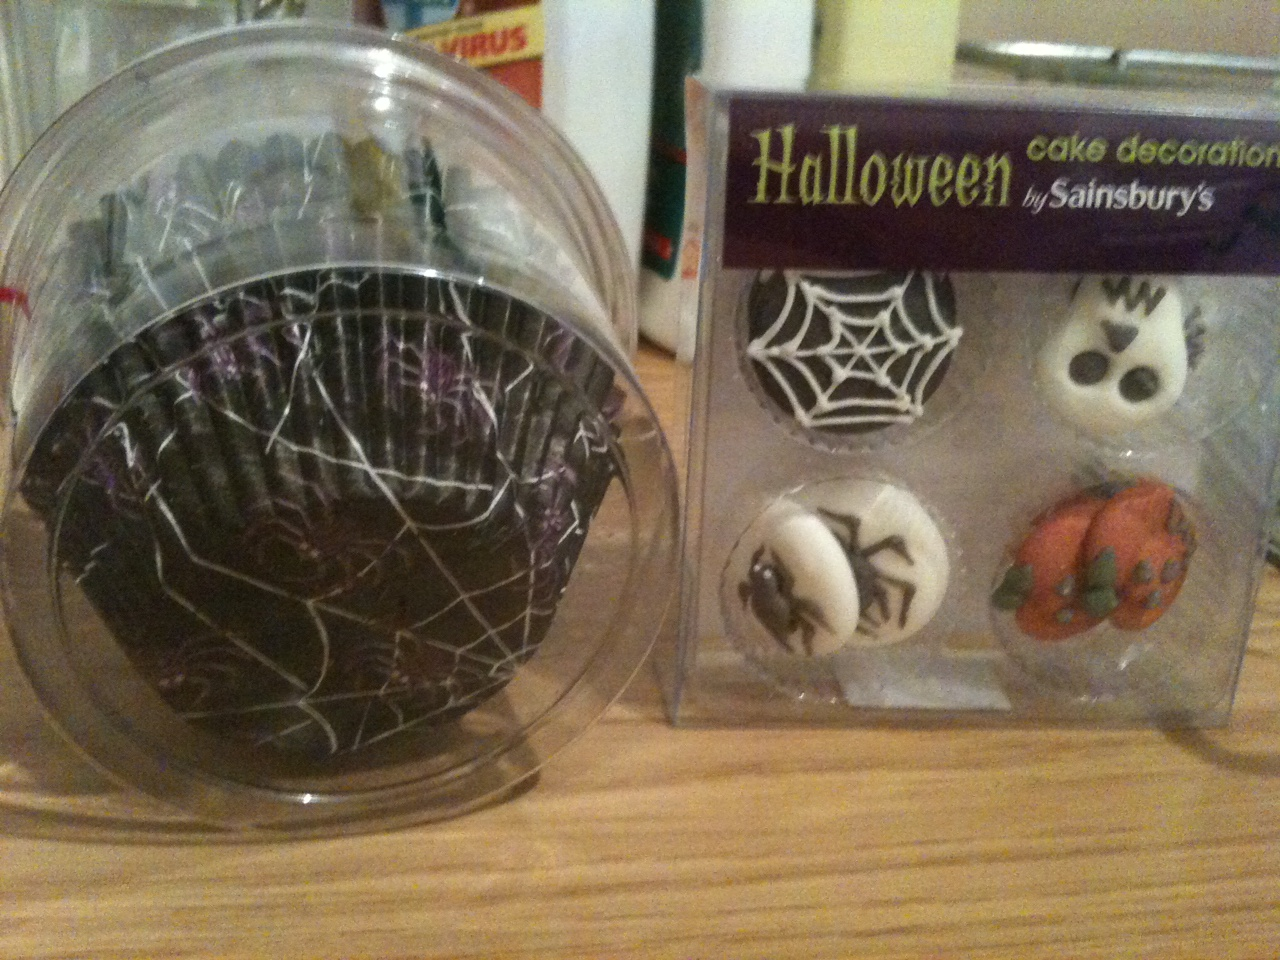 Halloween Cake Decorations Tesco : Exciting baking supplies shopping trip! Kerry Cooks